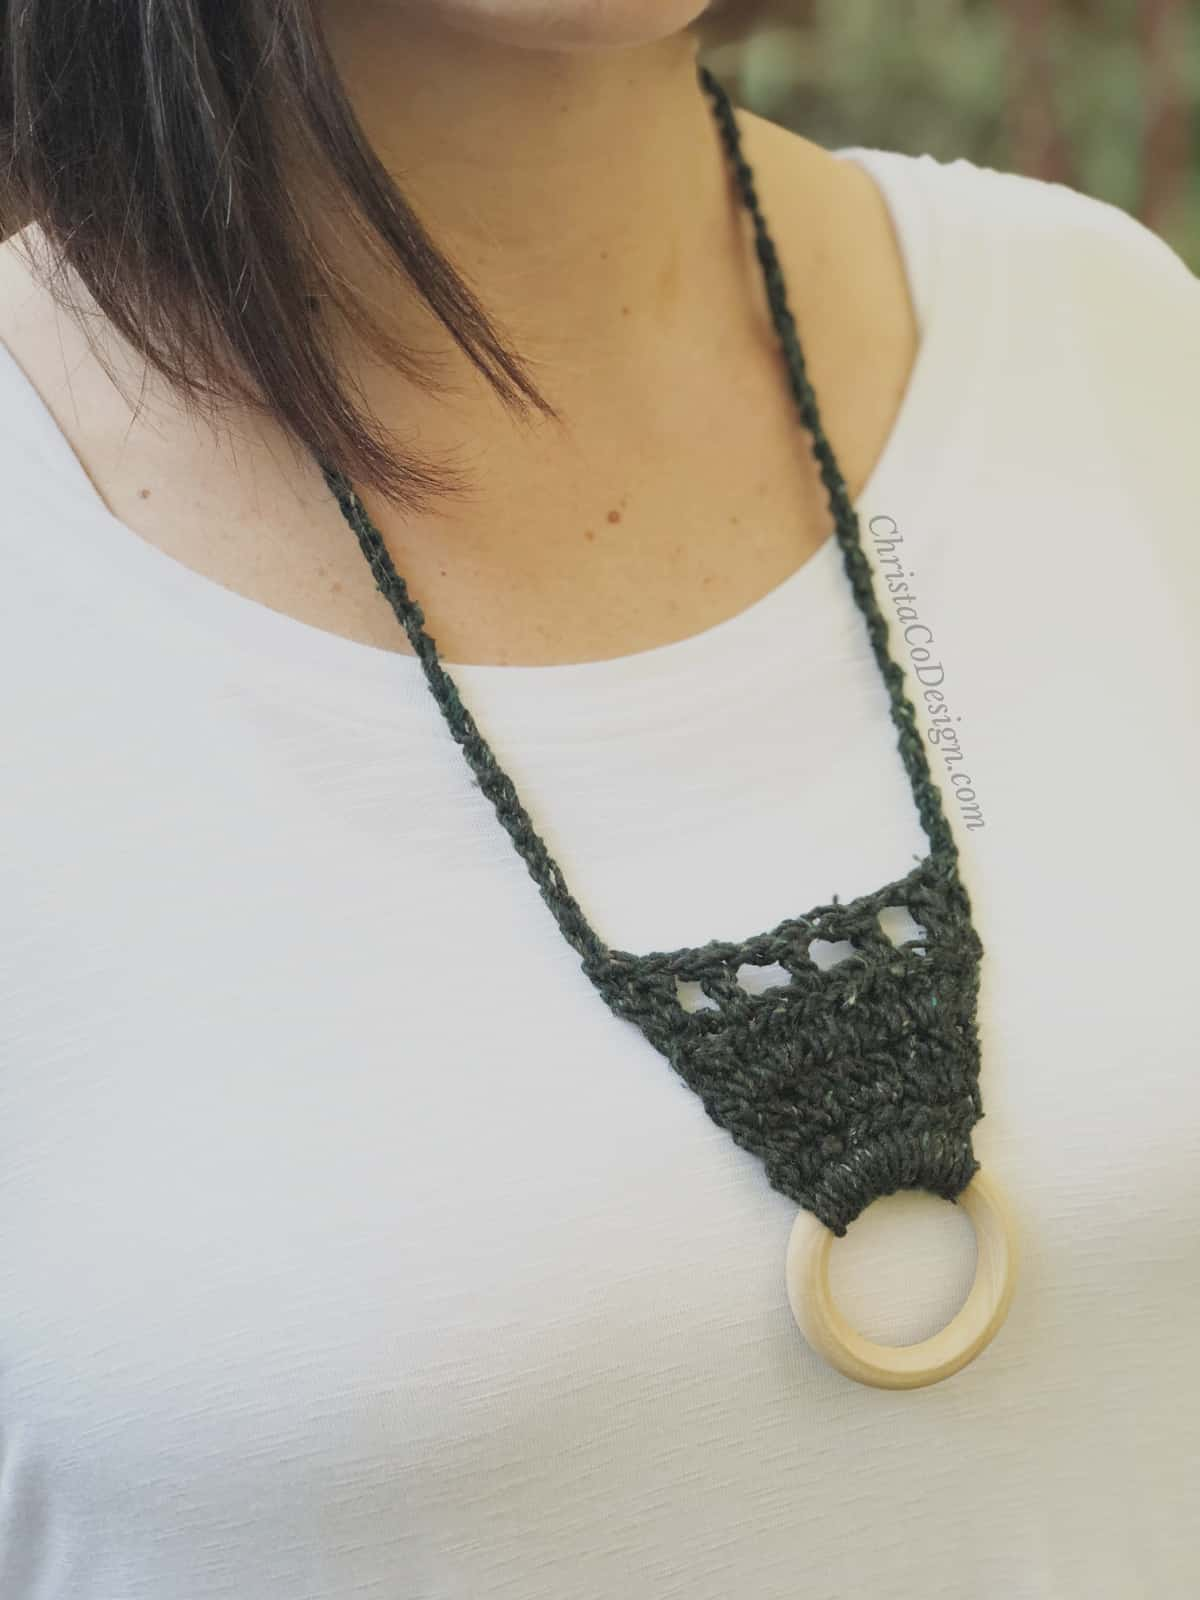 picture of dark green easy crochet necklace up close with wood ring at center on woman's white shirt